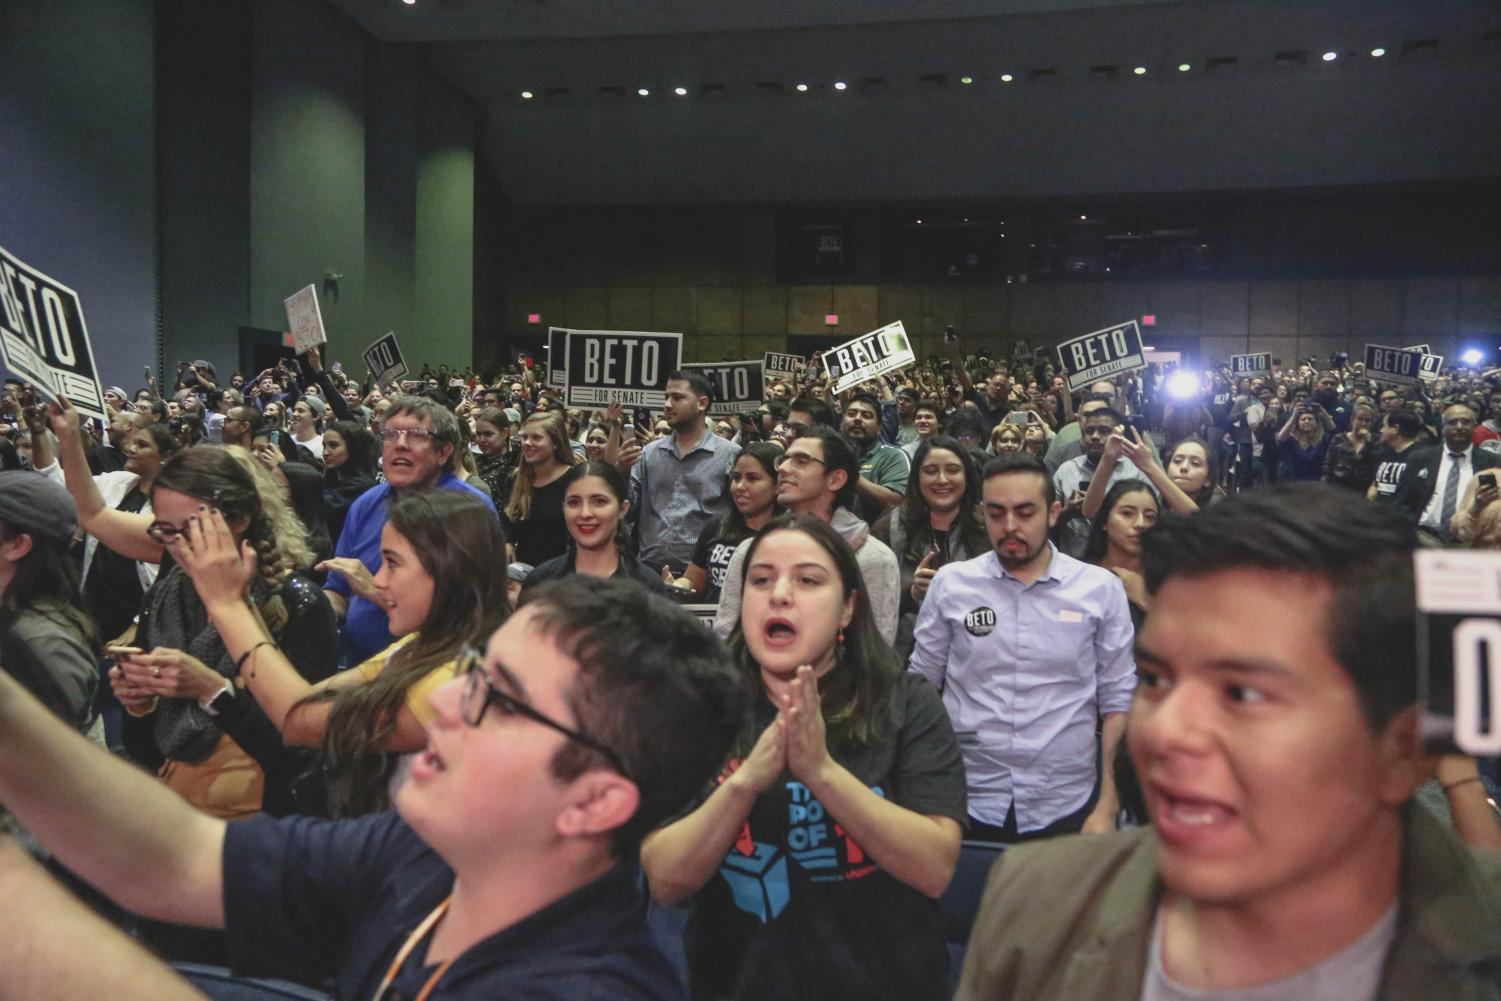 Congressman+Beto+O%27Rourke%27s+supporters+cheer+his+name+as+he+takes+the+stage+for+his+final+rally+before+Election+Day+on+Monday%2C+Nov.+5+at+the+Magoffin+Auditorium.+